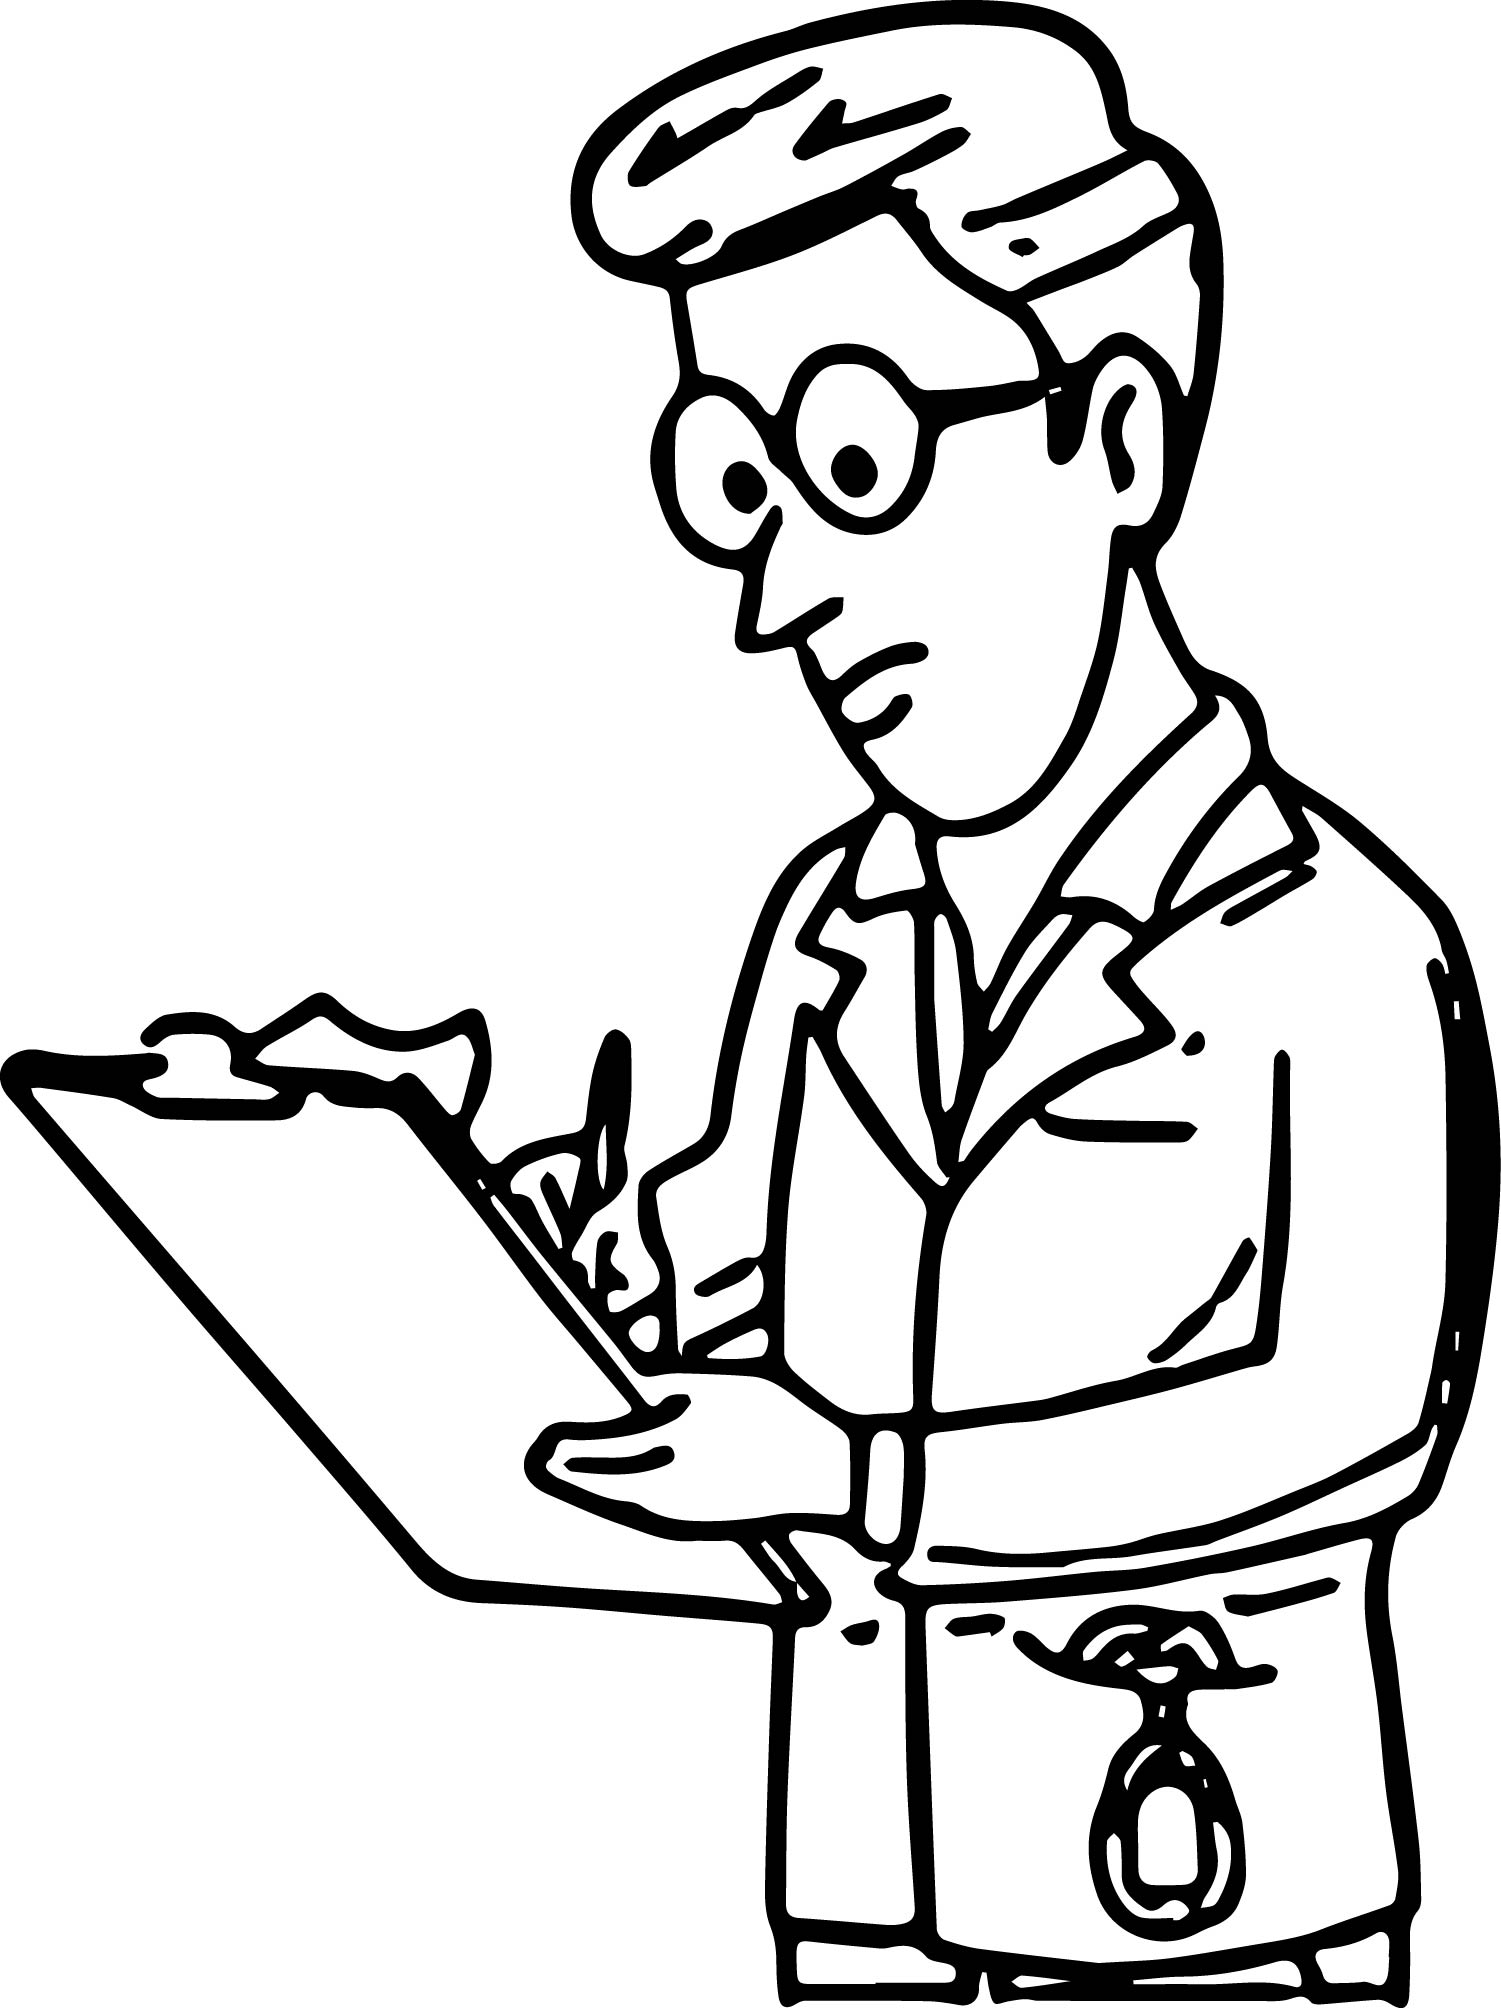 Free Doctor Clipart Black And White Download Free Clip